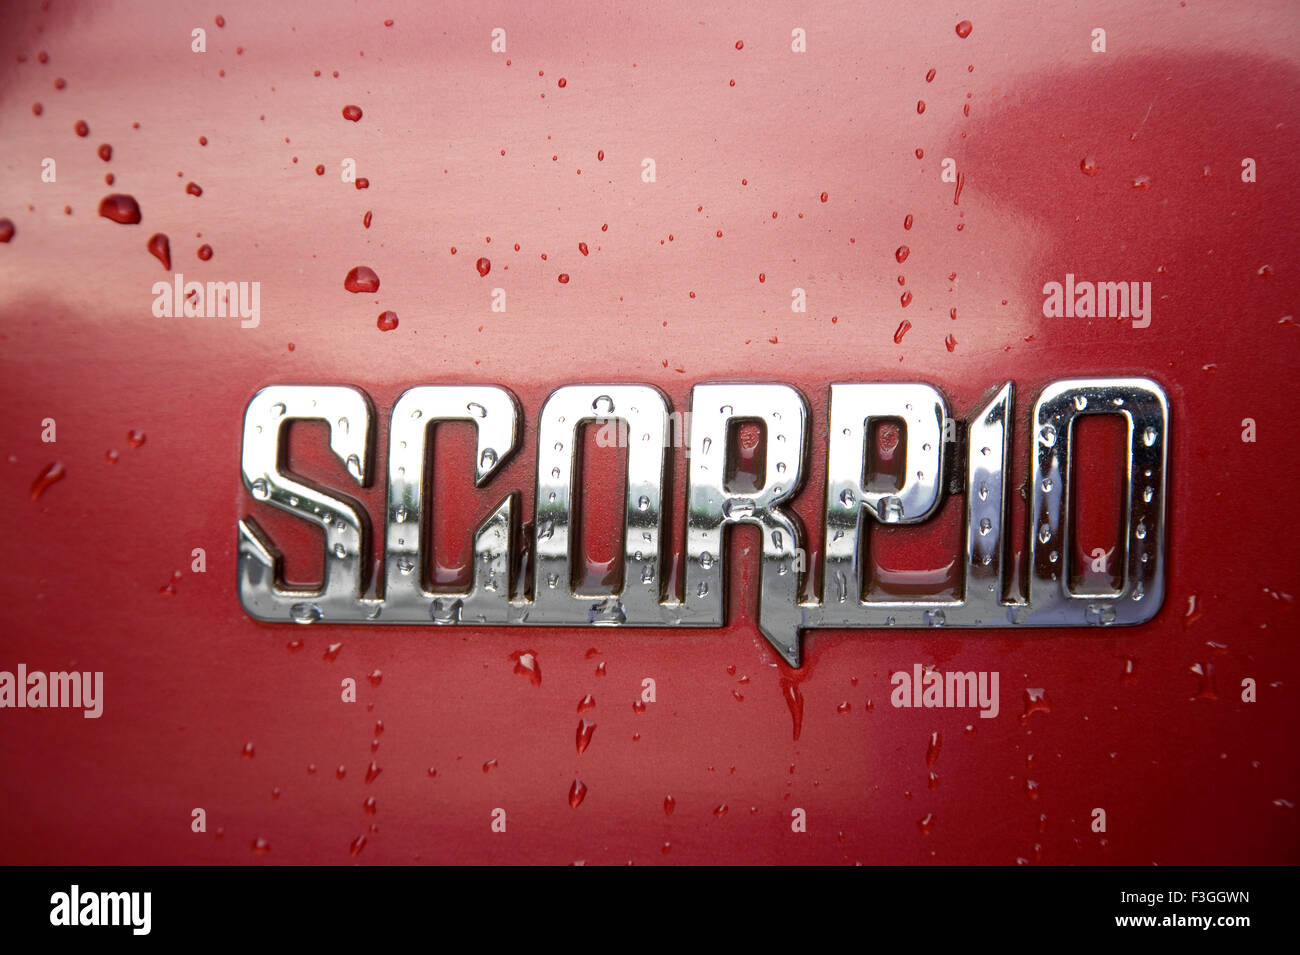 Four Letters Stock Photos & Four Letters Stock Images - Alamy